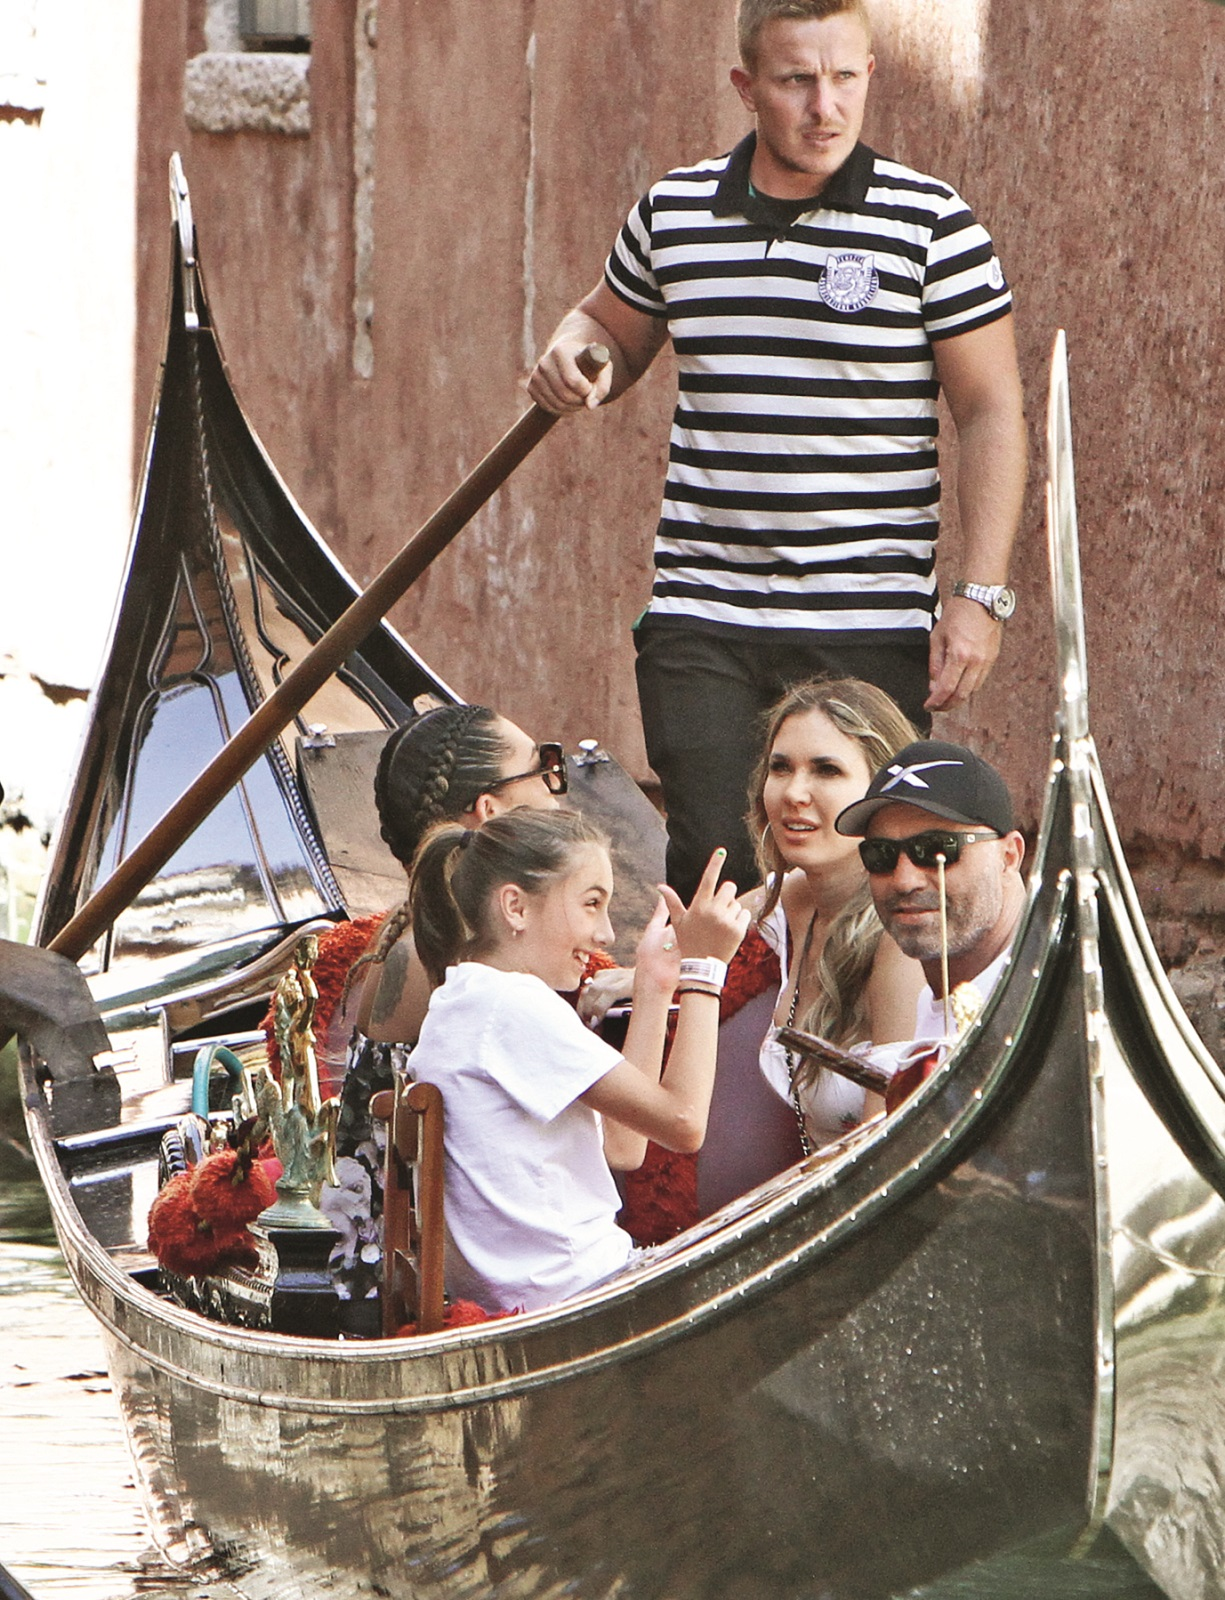 EXCLUSIVE: Joe Rogan with his family take a romantic gondola ride in Venice. 14 Jul 2019,Image: 458719677, License: Rights-managed, Restrictions: World Rights, Model Release: no